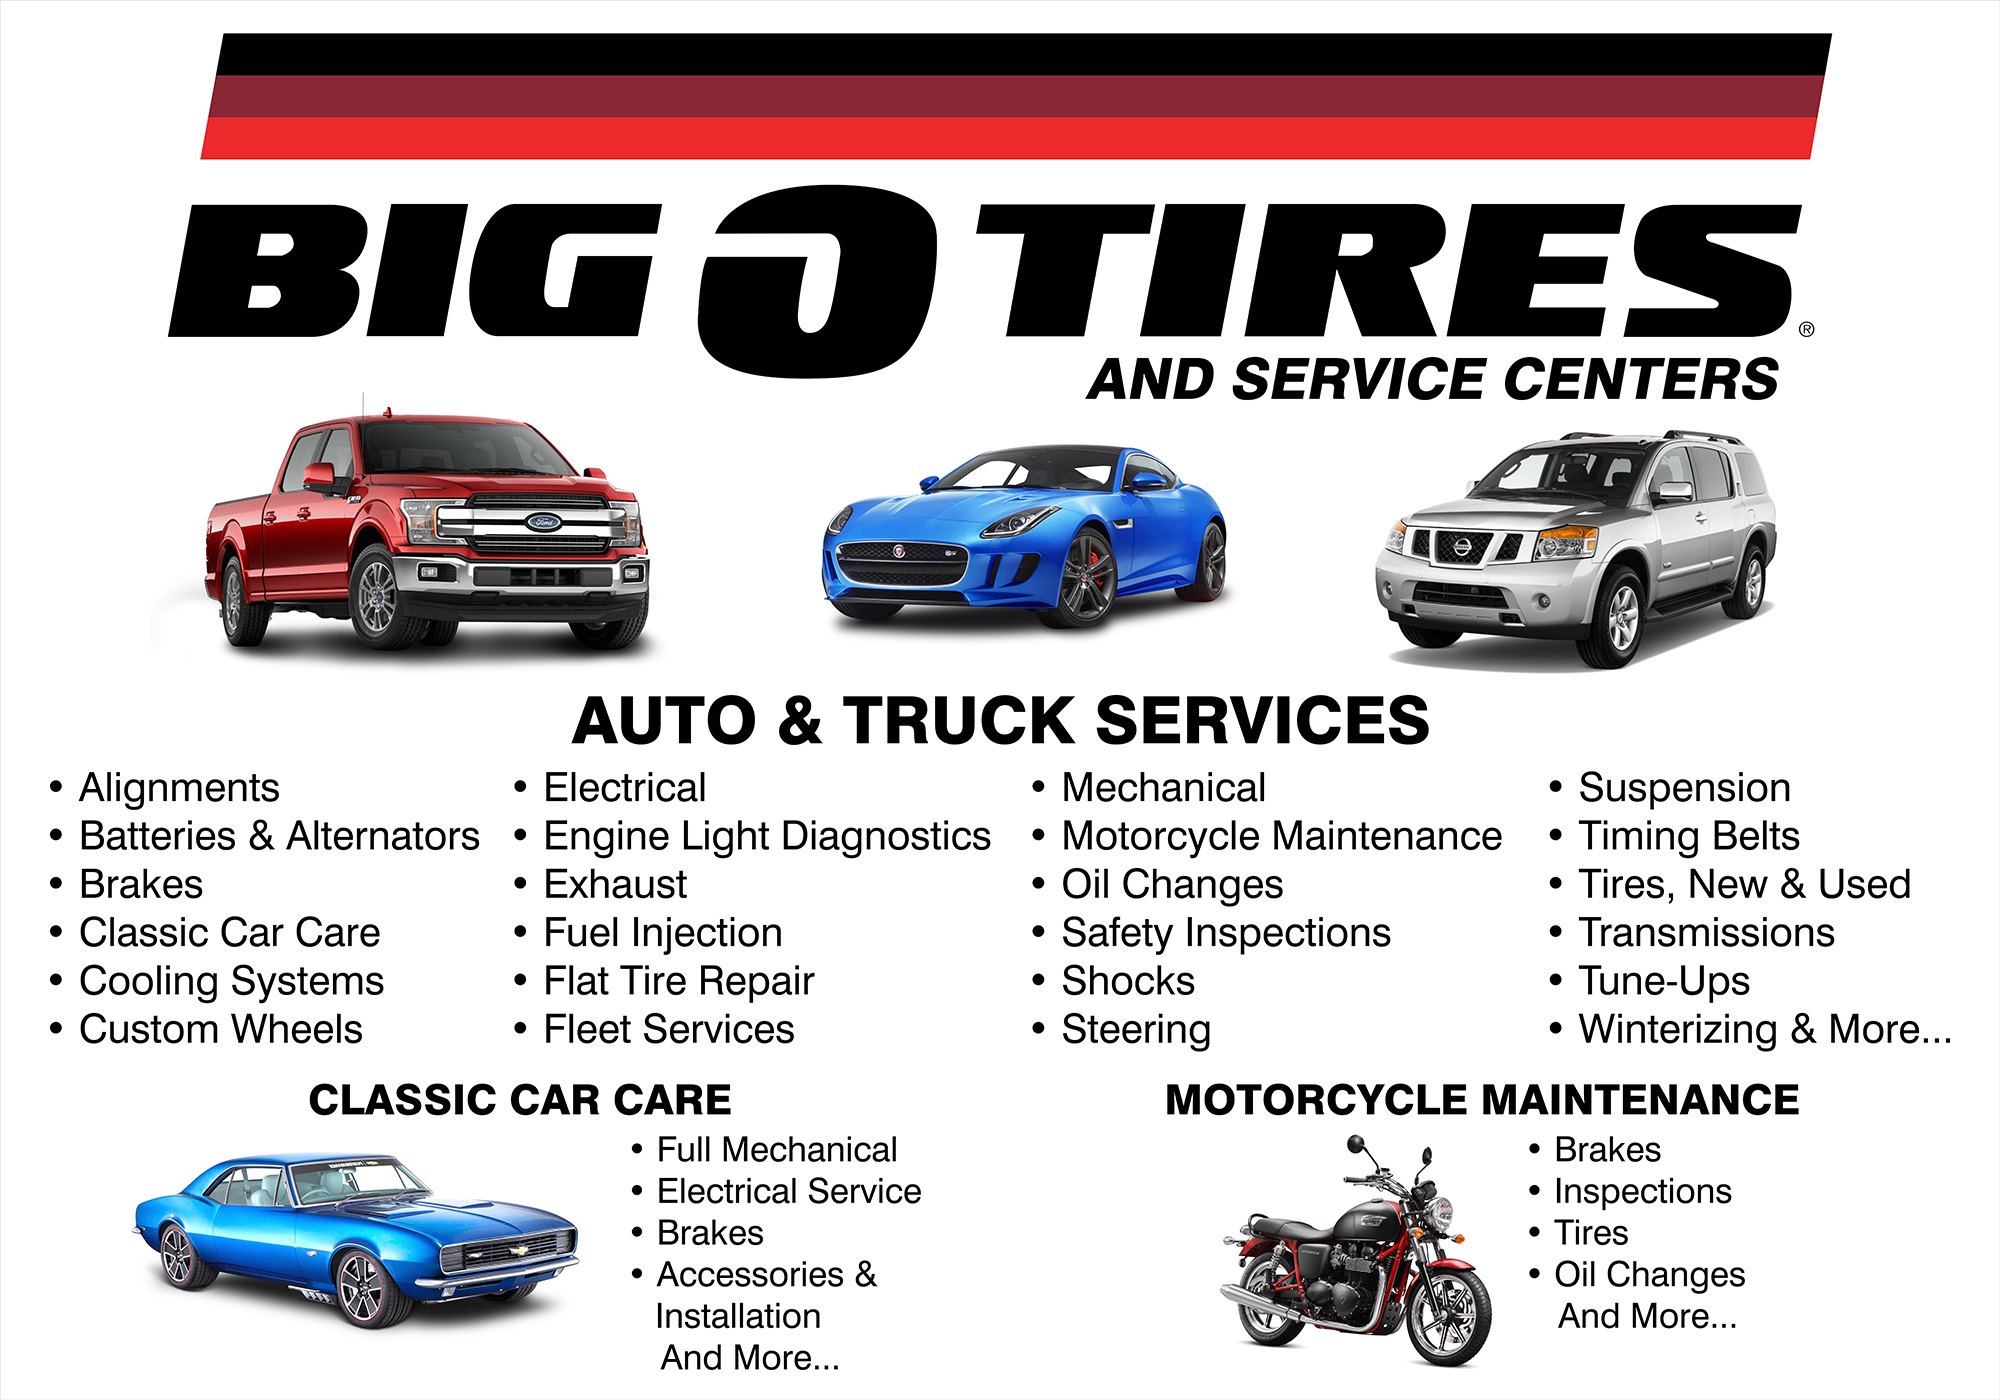 Big O Tires Services Sign Proof R2